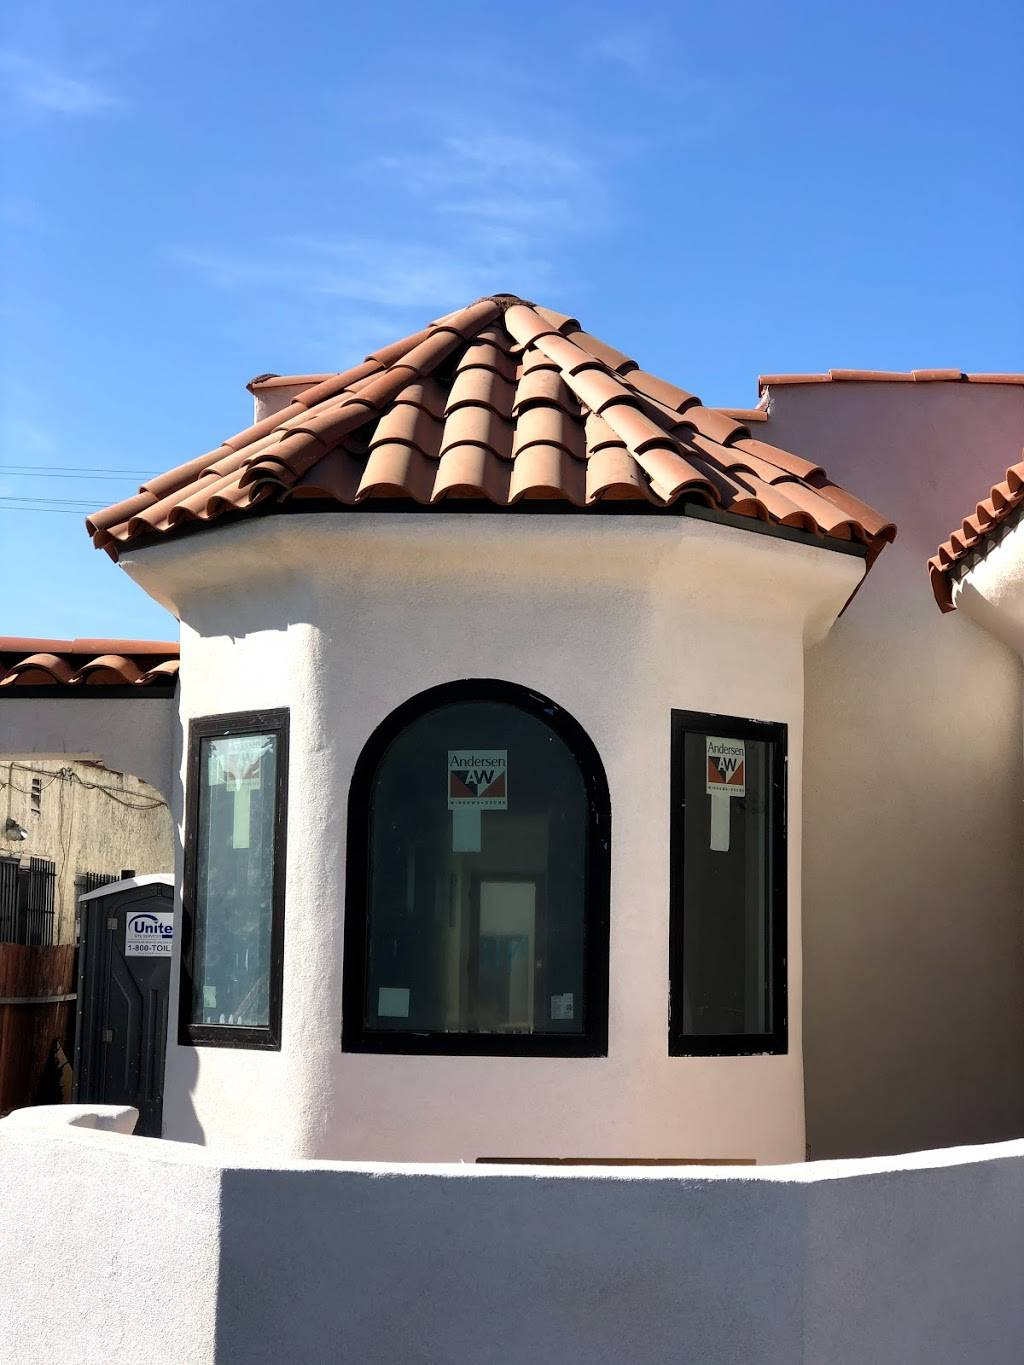 Allied Building Products, A Beacon Roofing Supply Company - home goods store  | Photo 4 of 6 | Address: 1212 W 58th St, Los Angeles, CA 90037, USA | Phone: (323) 753-1277